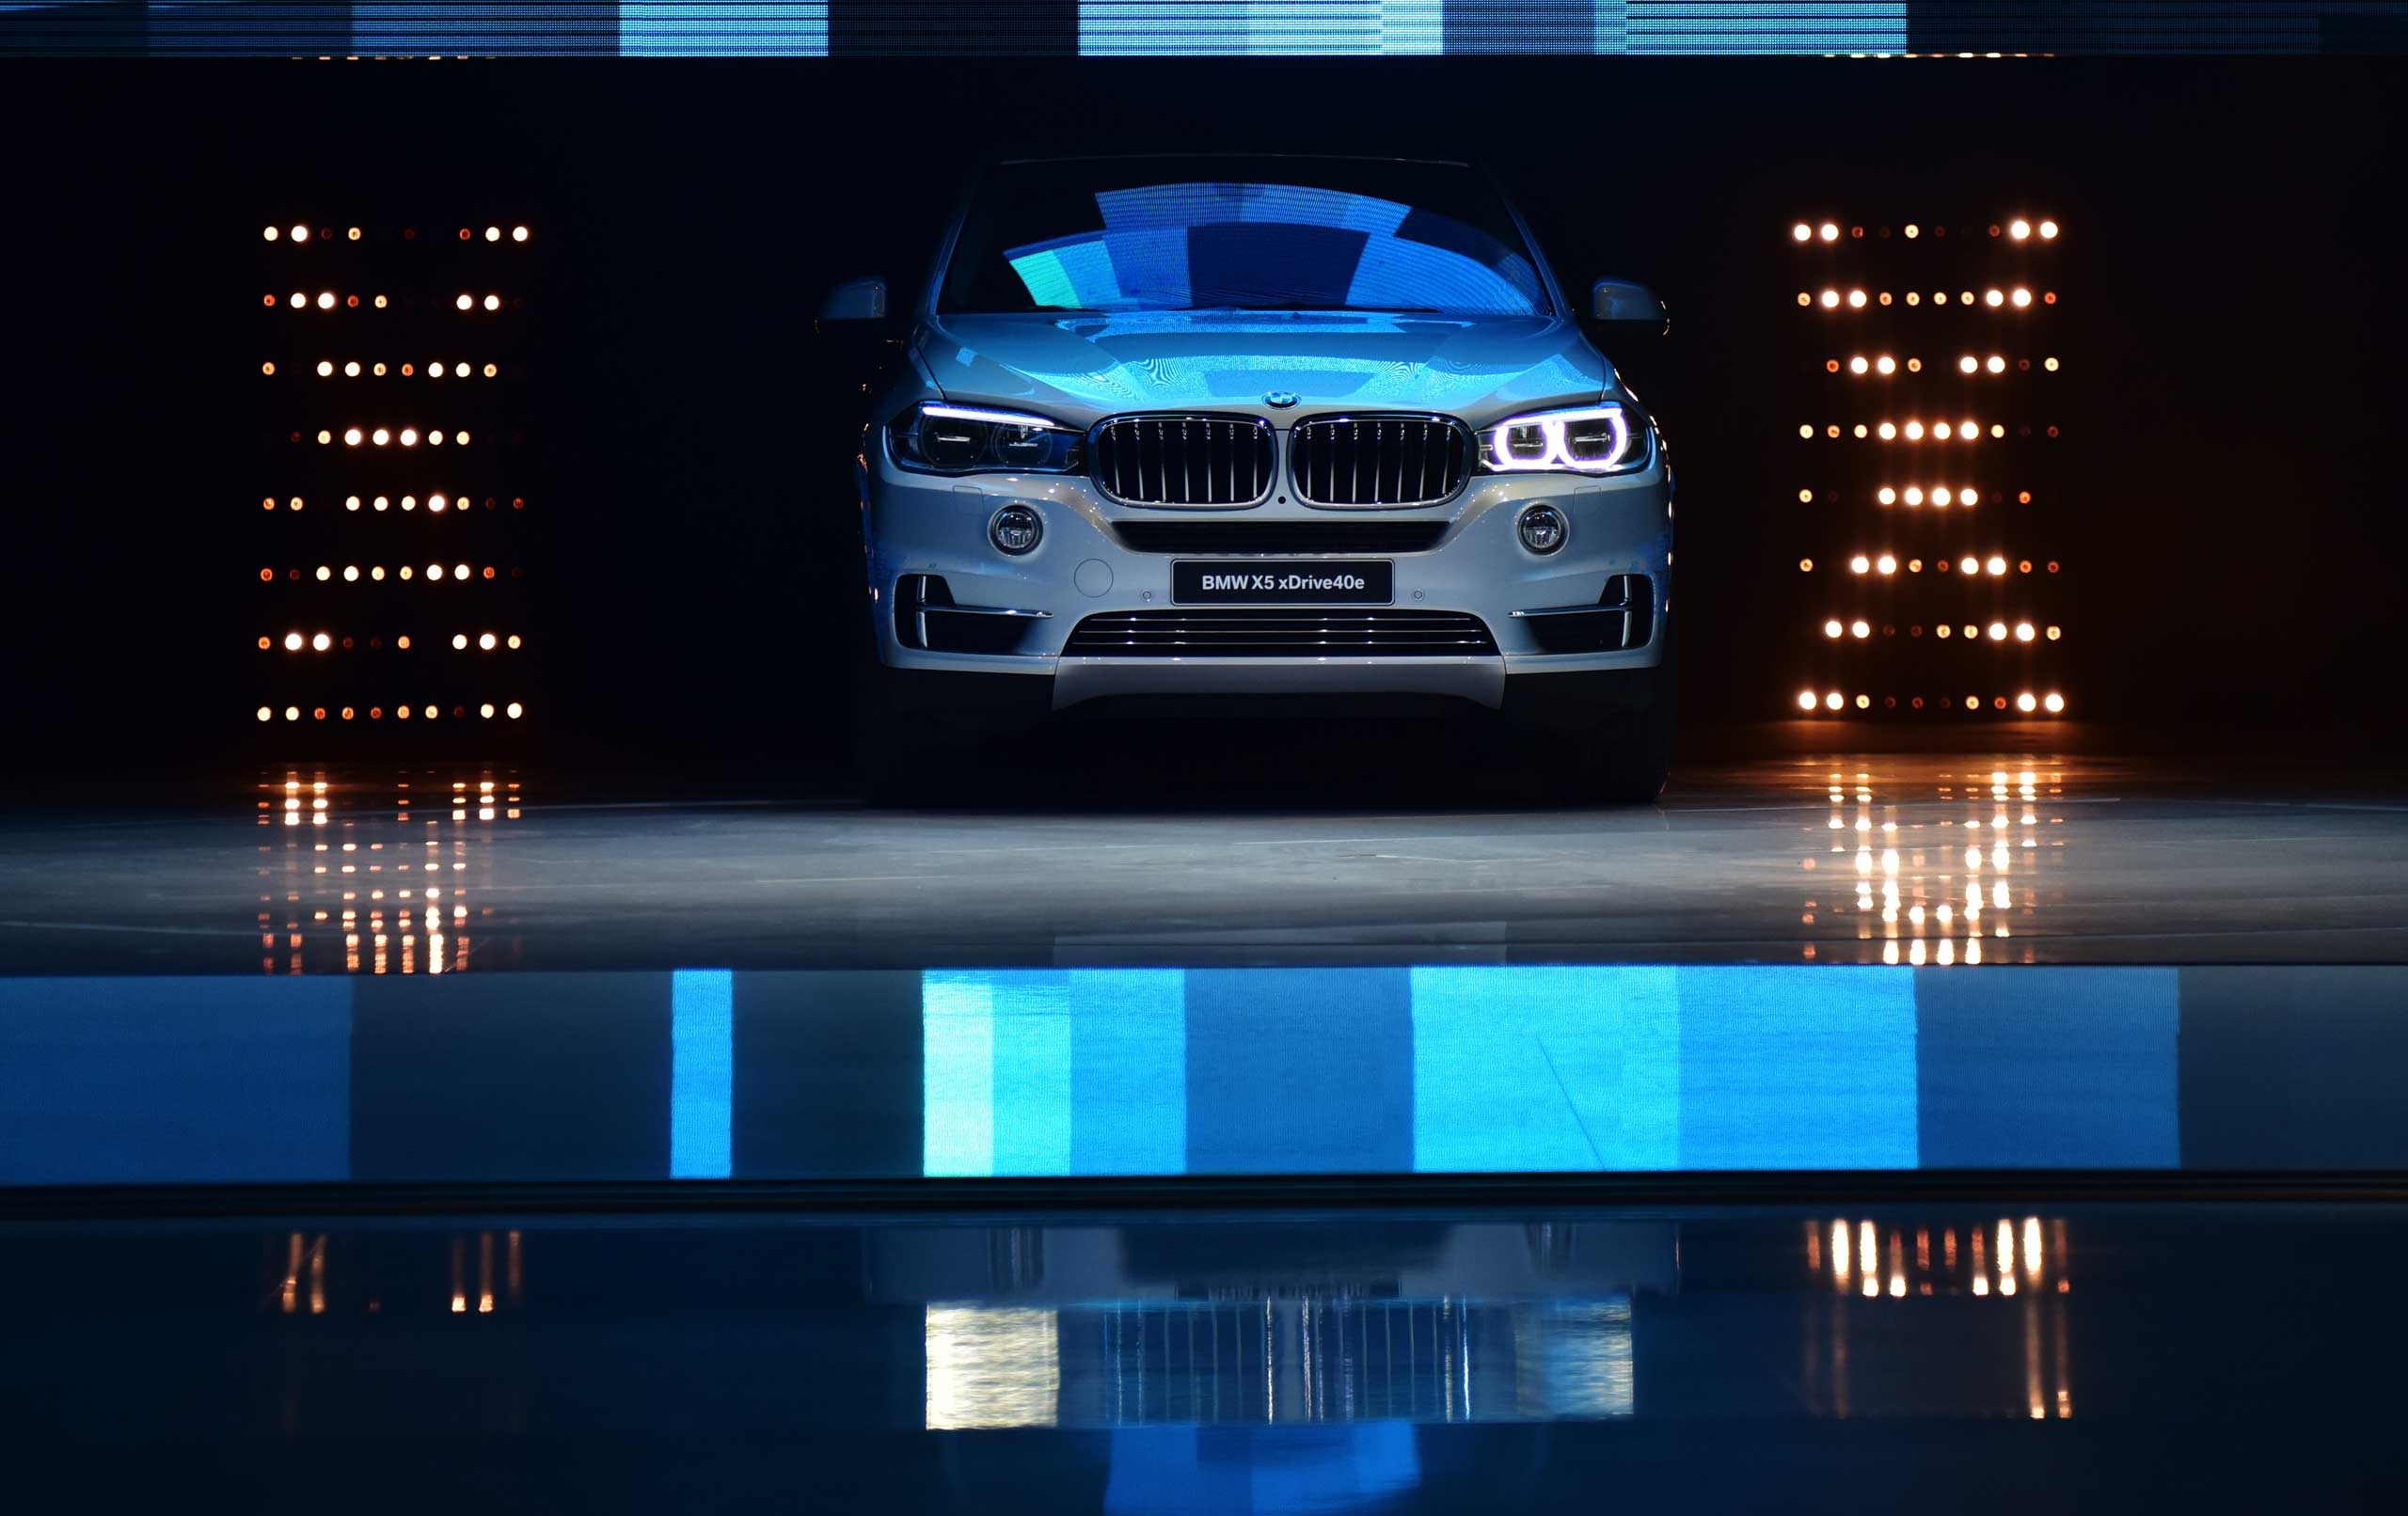 A BMW X5 xDrive 40e is displayed at the 16th Shanghai International Automobile Industry Exhibition in Shanghai on April 20, 2015.